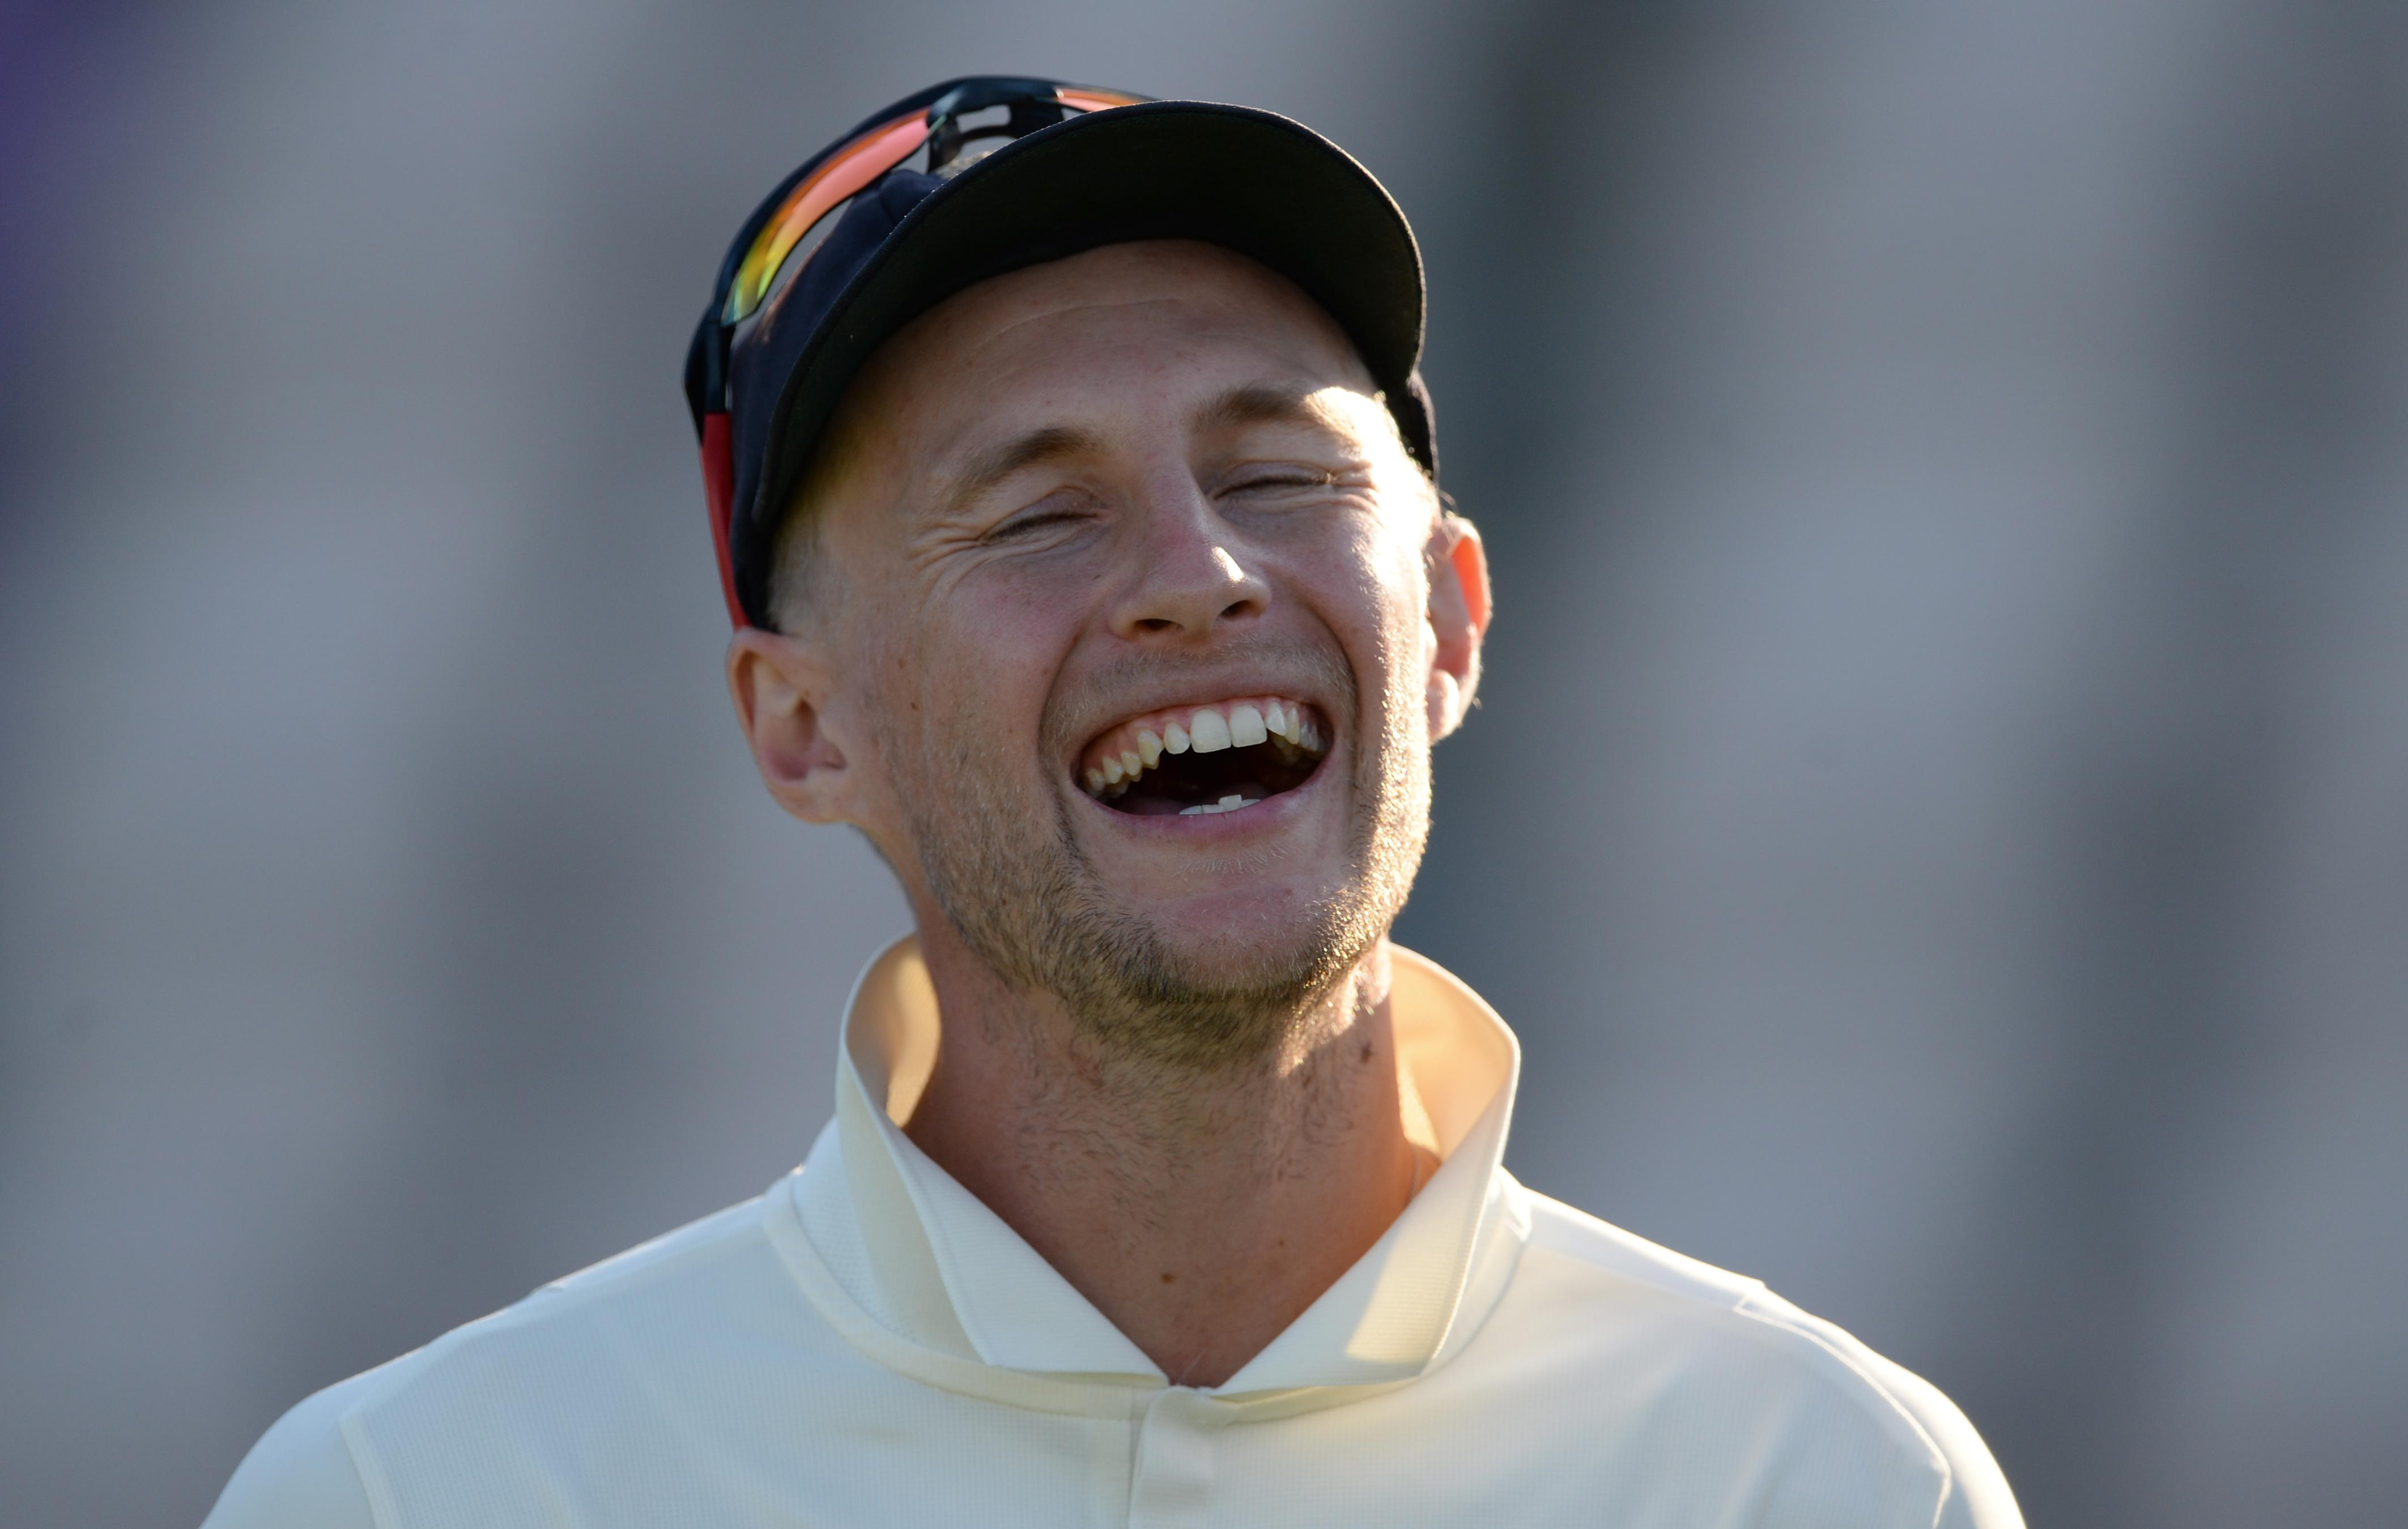 Joe Root summoned his players and laid out his vision of a vibrant, fearless team.